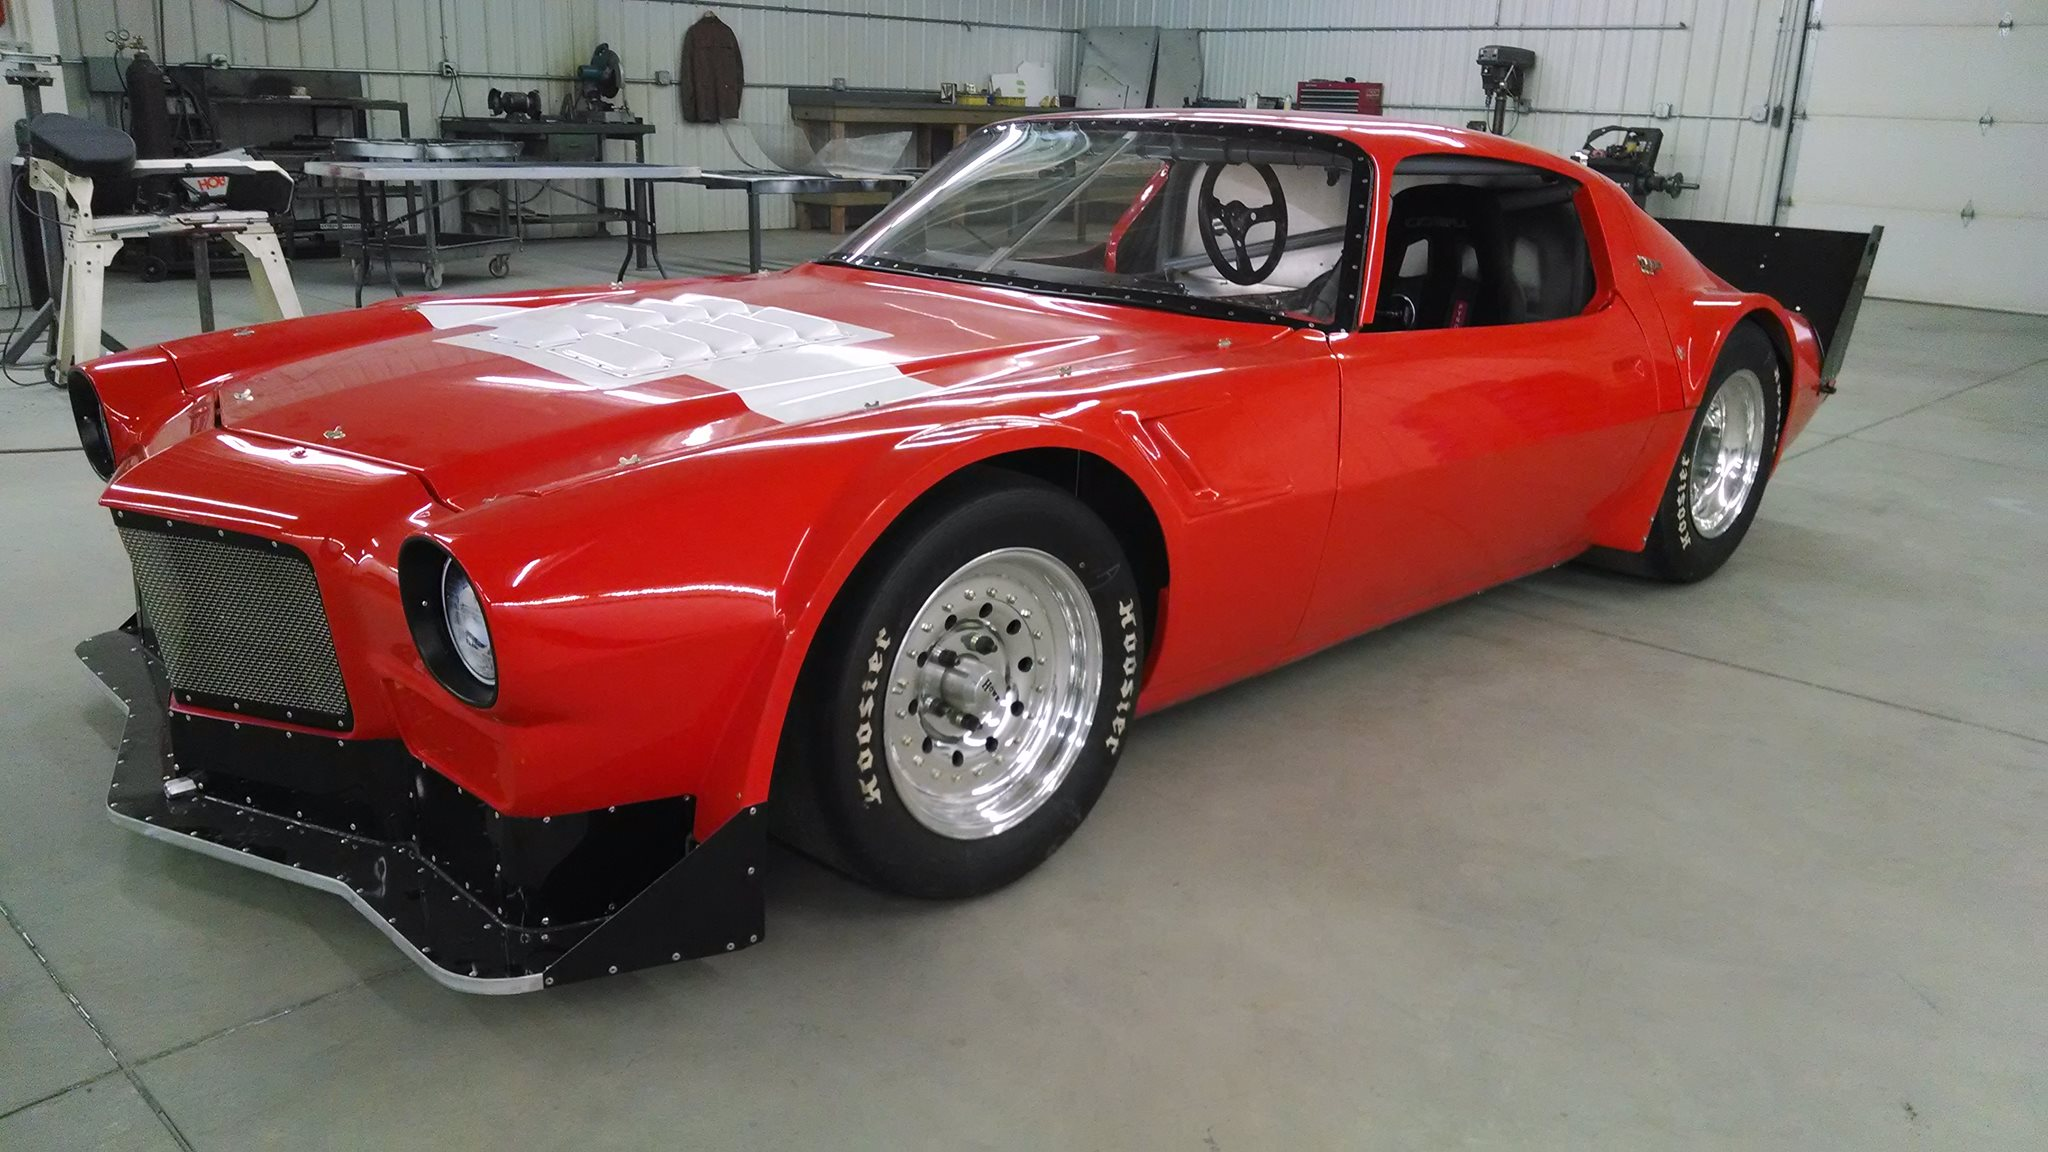 This full tilt Camaro Set Up For E-Modified Autocross Will Make You Wish For Spring To Be Here Already